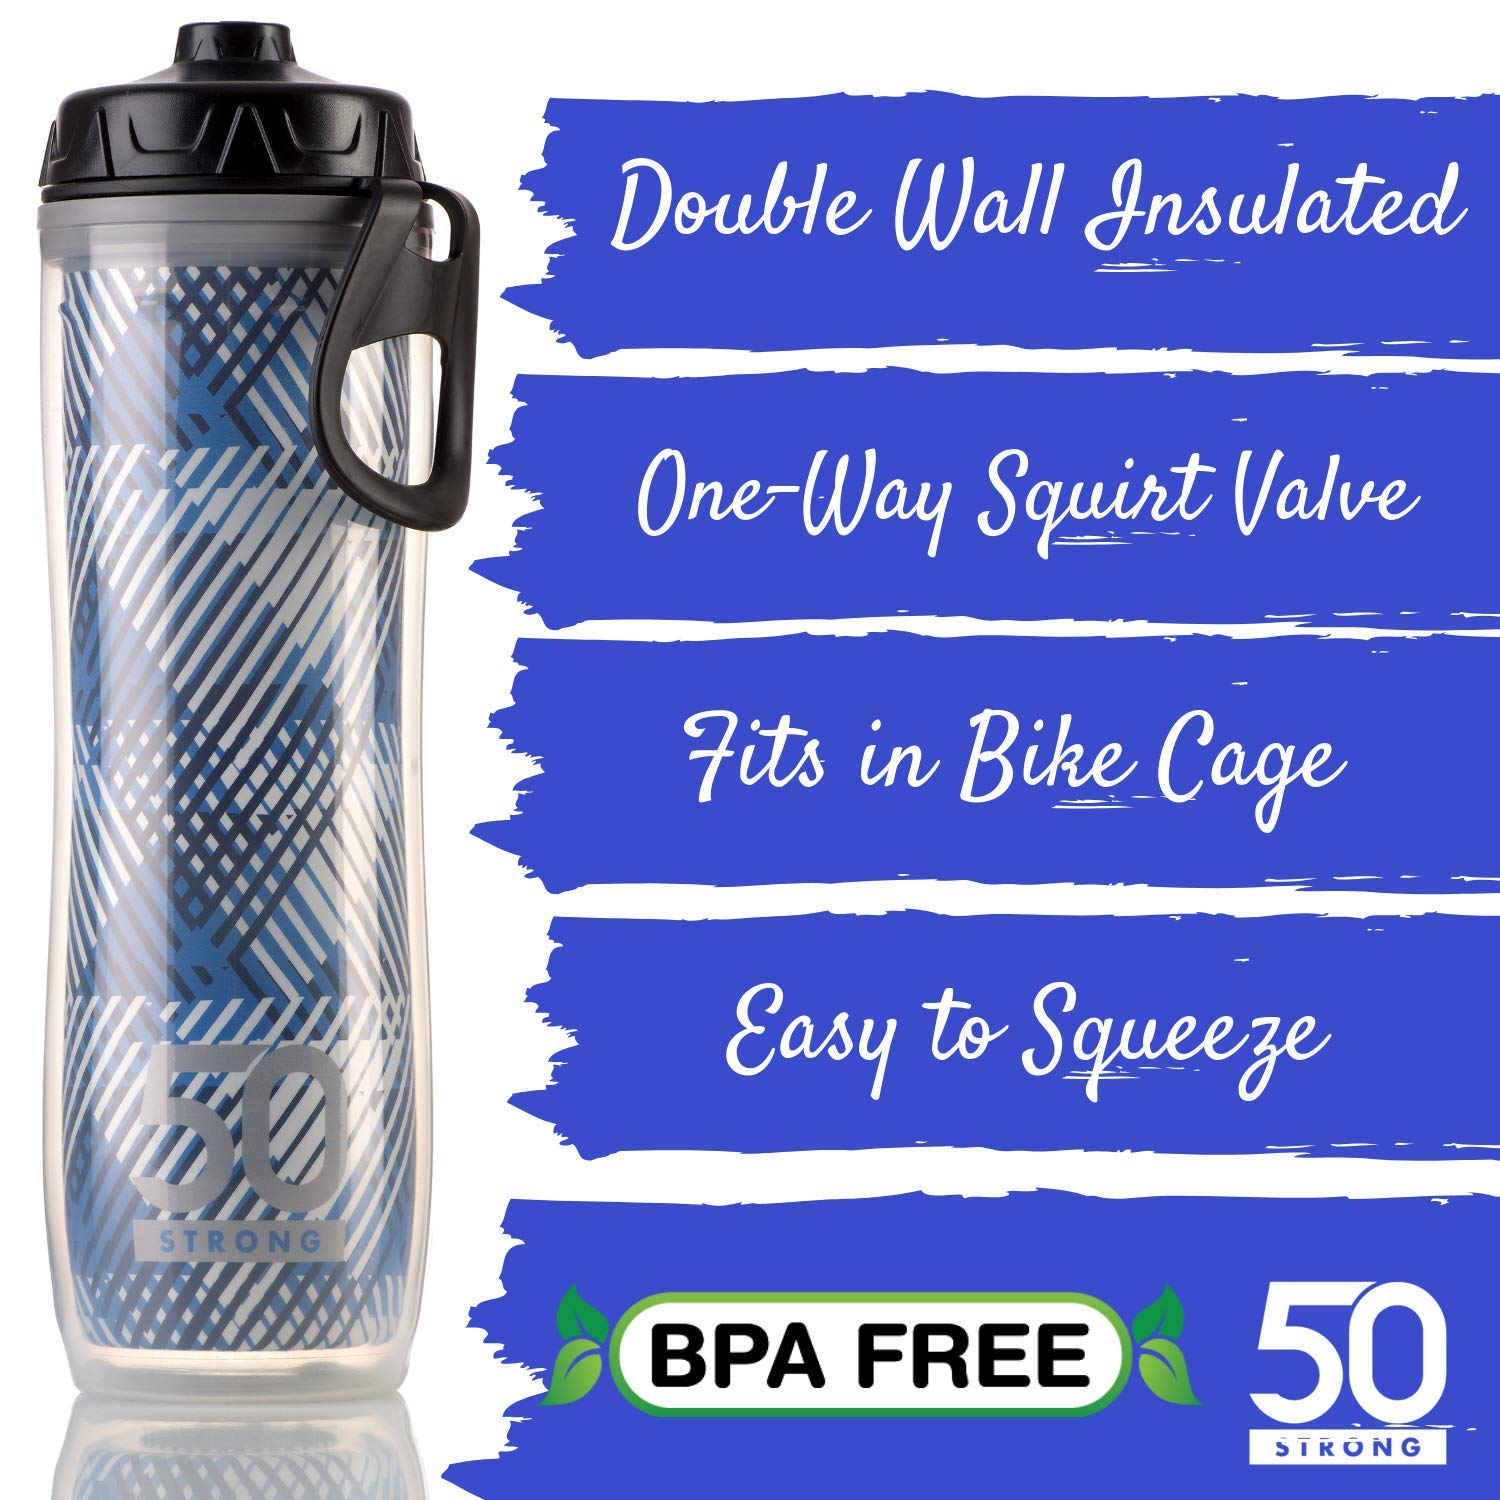 Lightweight Leak Proof Cap 24 oz Made in USA BPA Free Sports Bottle With One-Way Valve Perfect for Hiking Double Walled Plastic Design Keeps Drinks Cold Insulated Bike Water Bottle